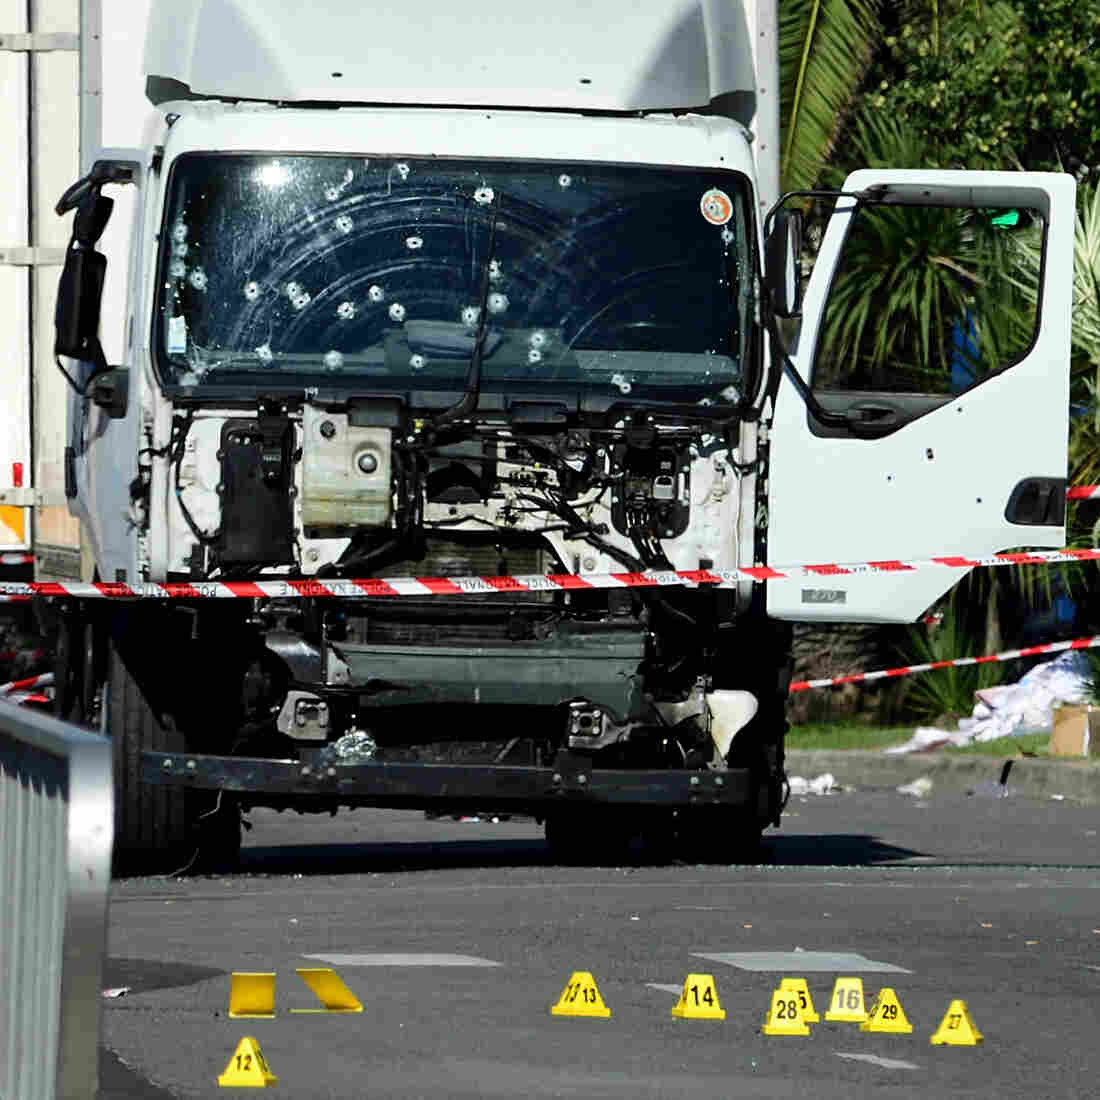 What We Know About The Suspect In The Nice, France, Attack